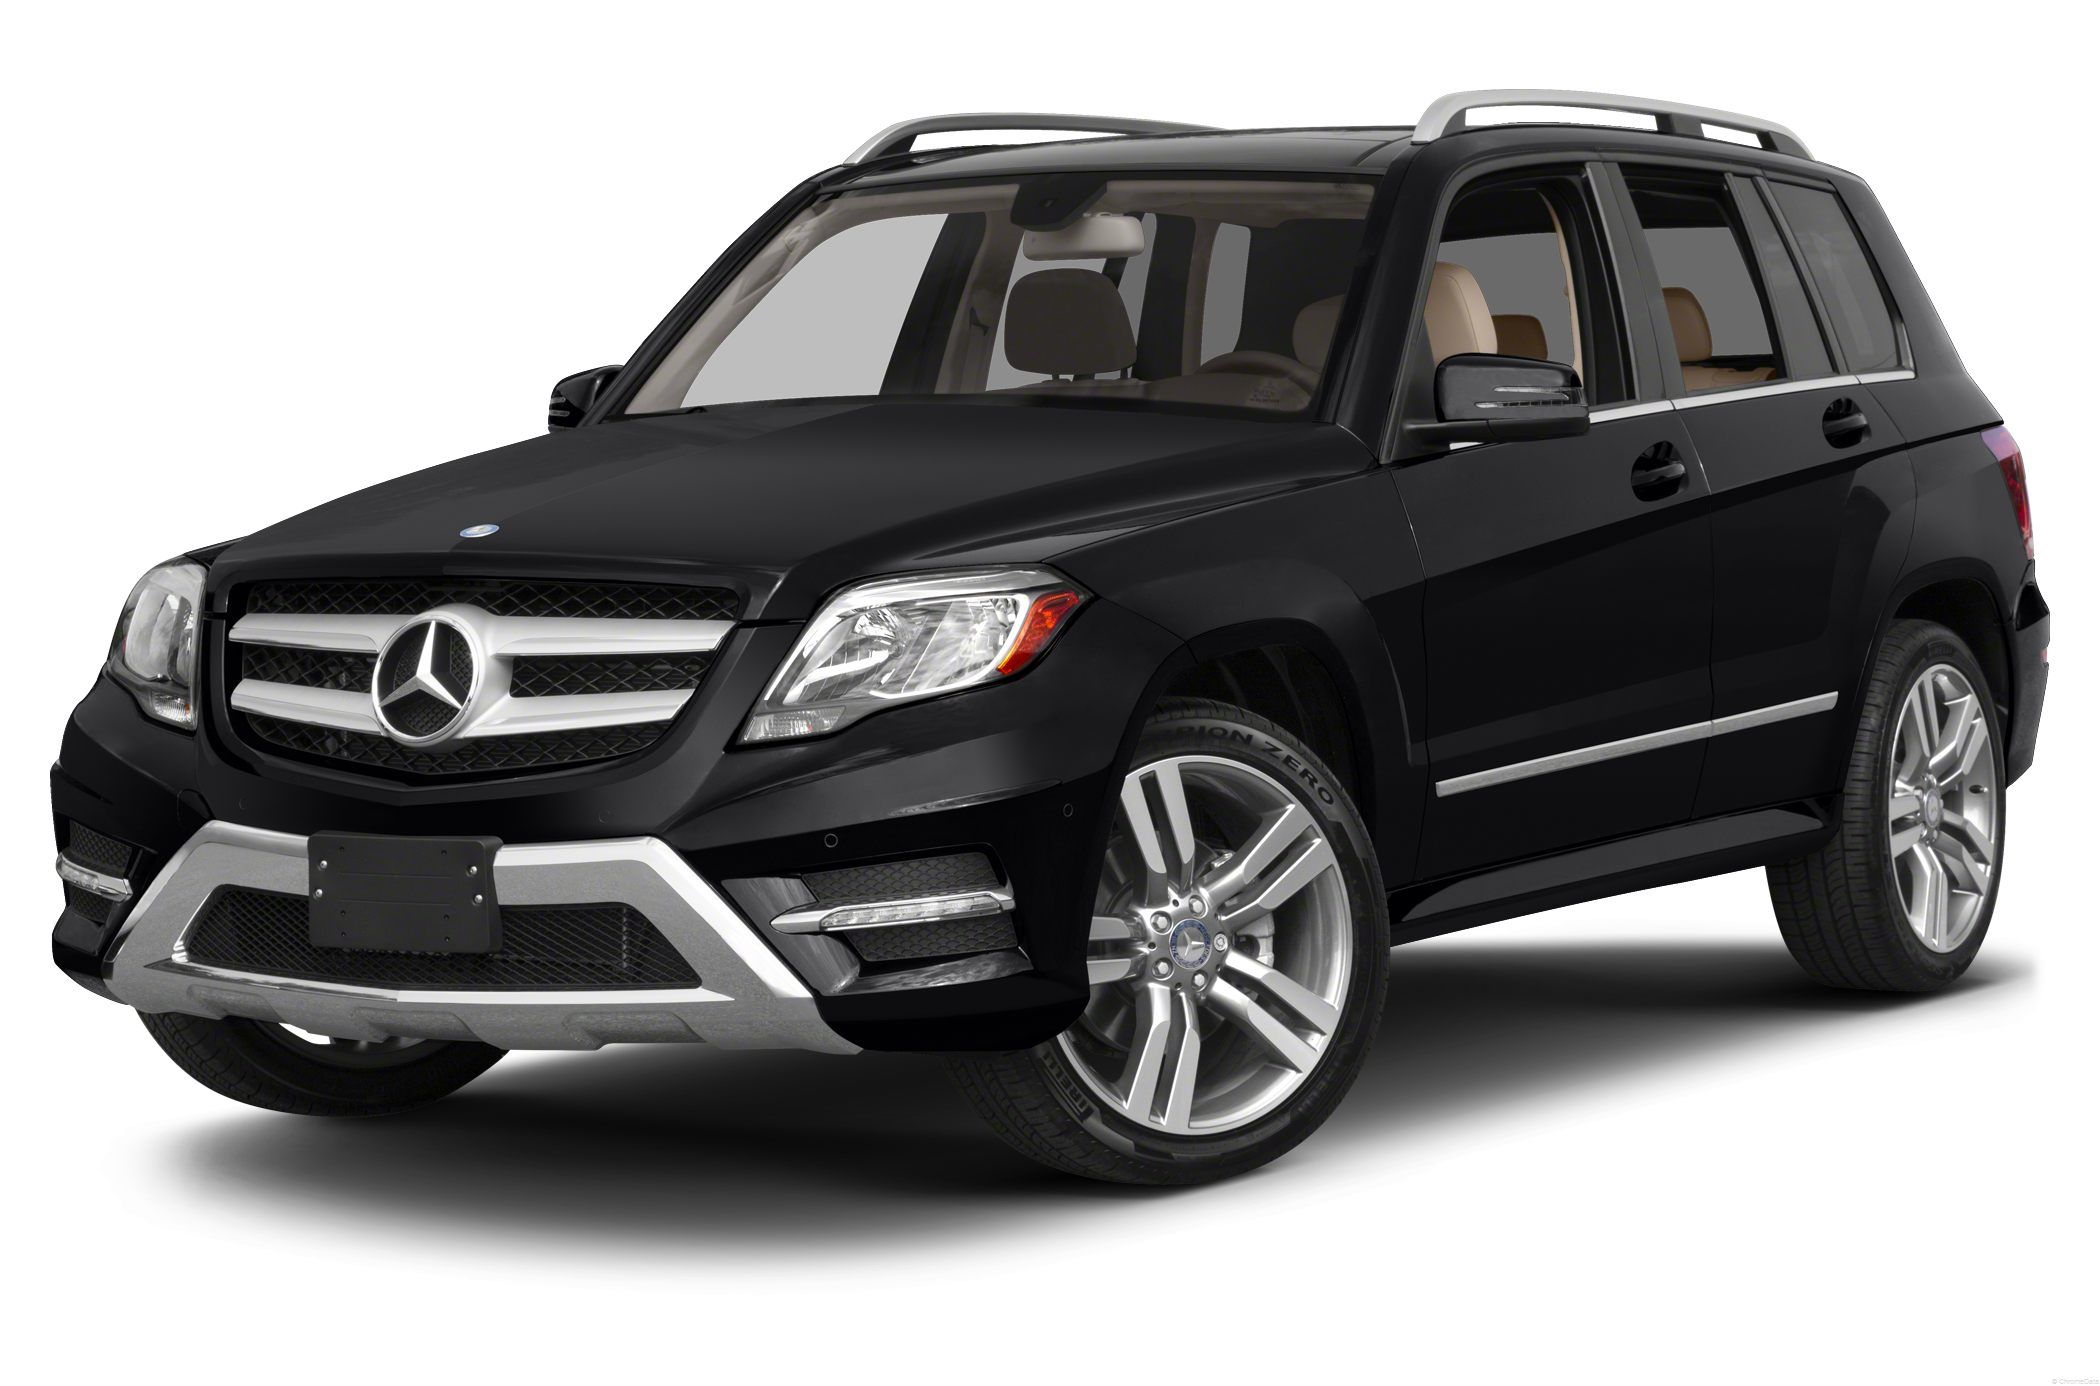 Mercedes-Benz GLK-Class SUVs http://www.cars-for-sales.com/?page_id ...